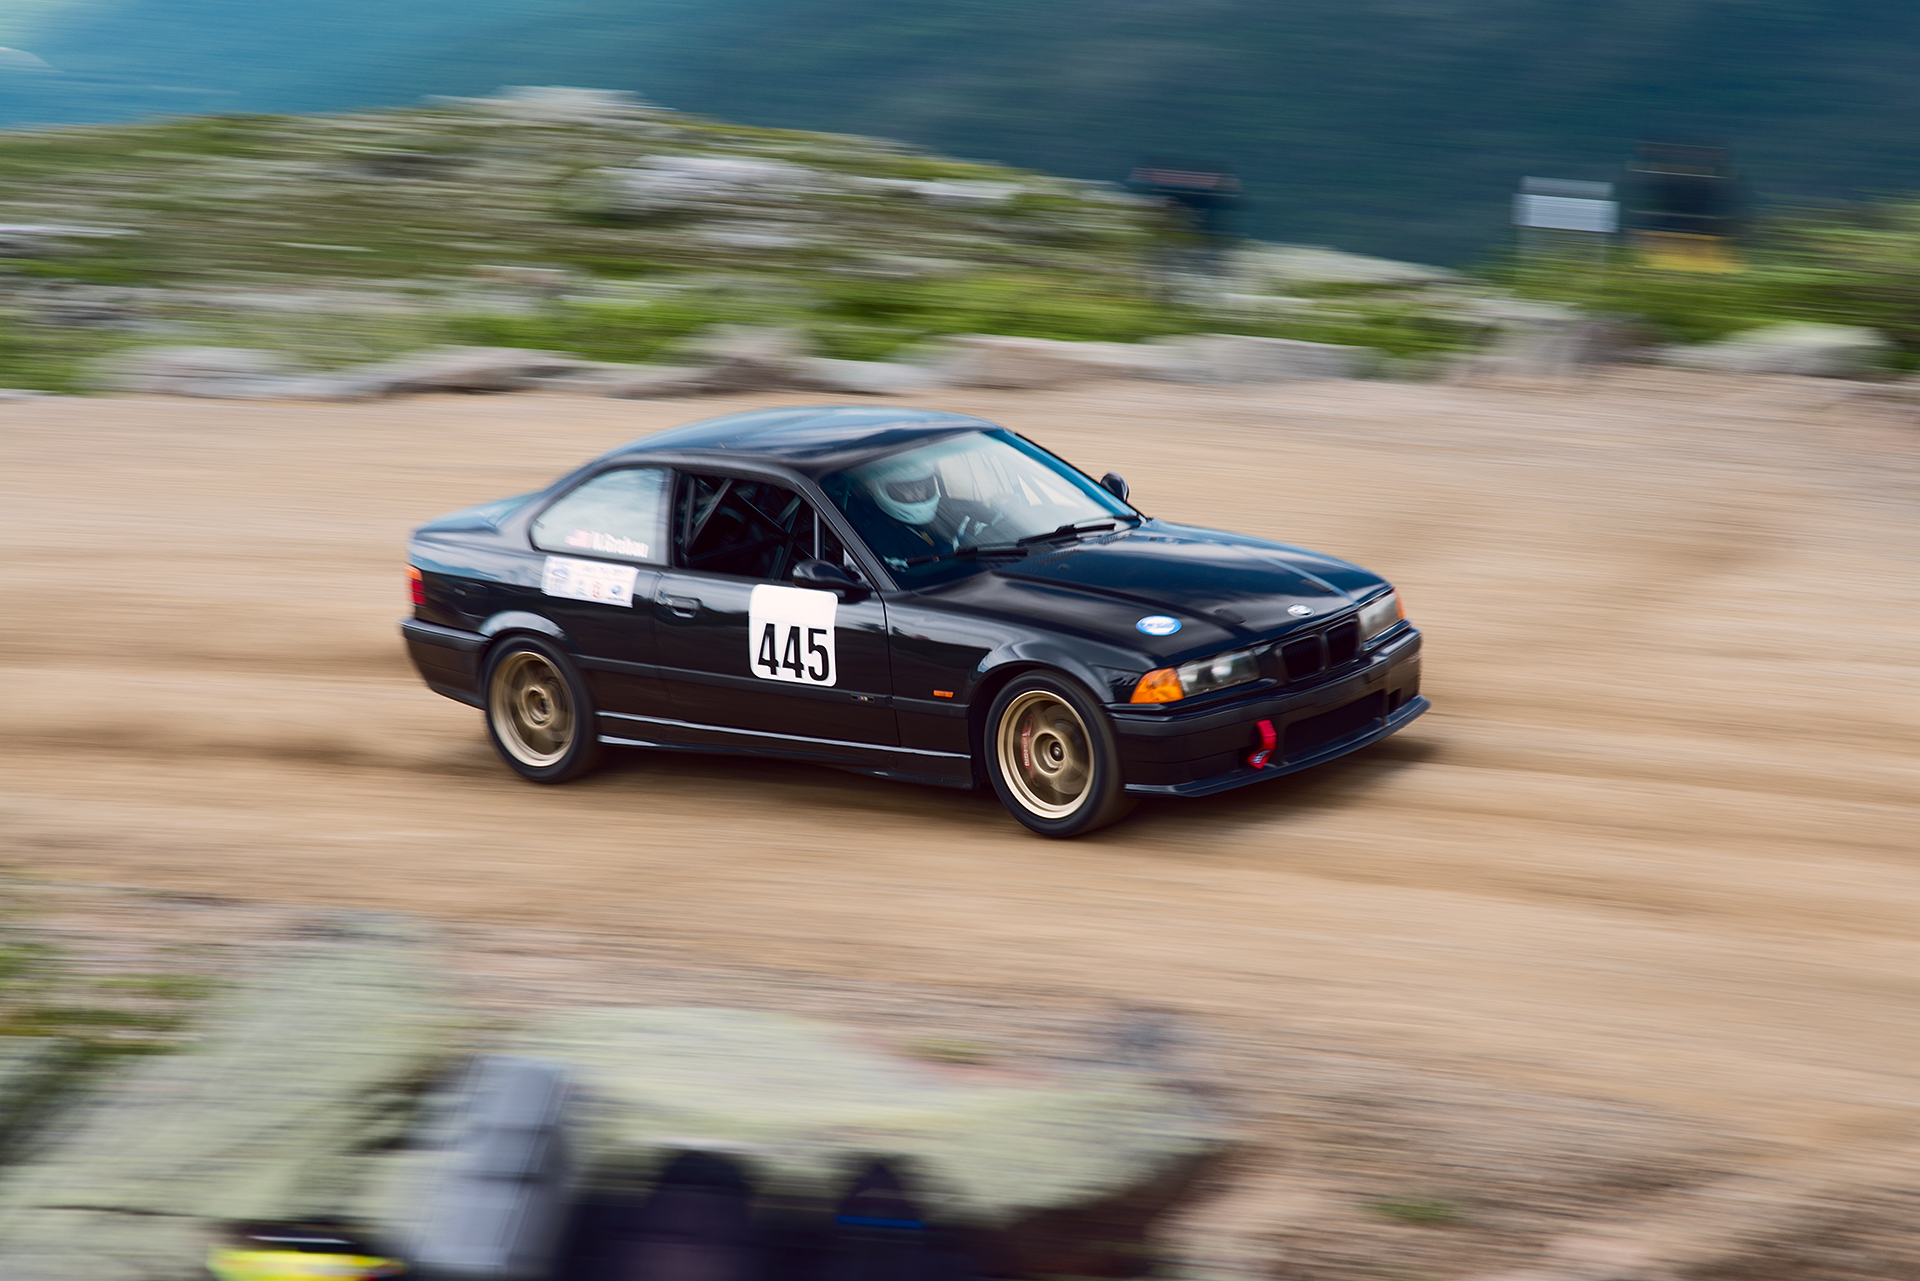 Car 445 at Climb to the Clouds 2017